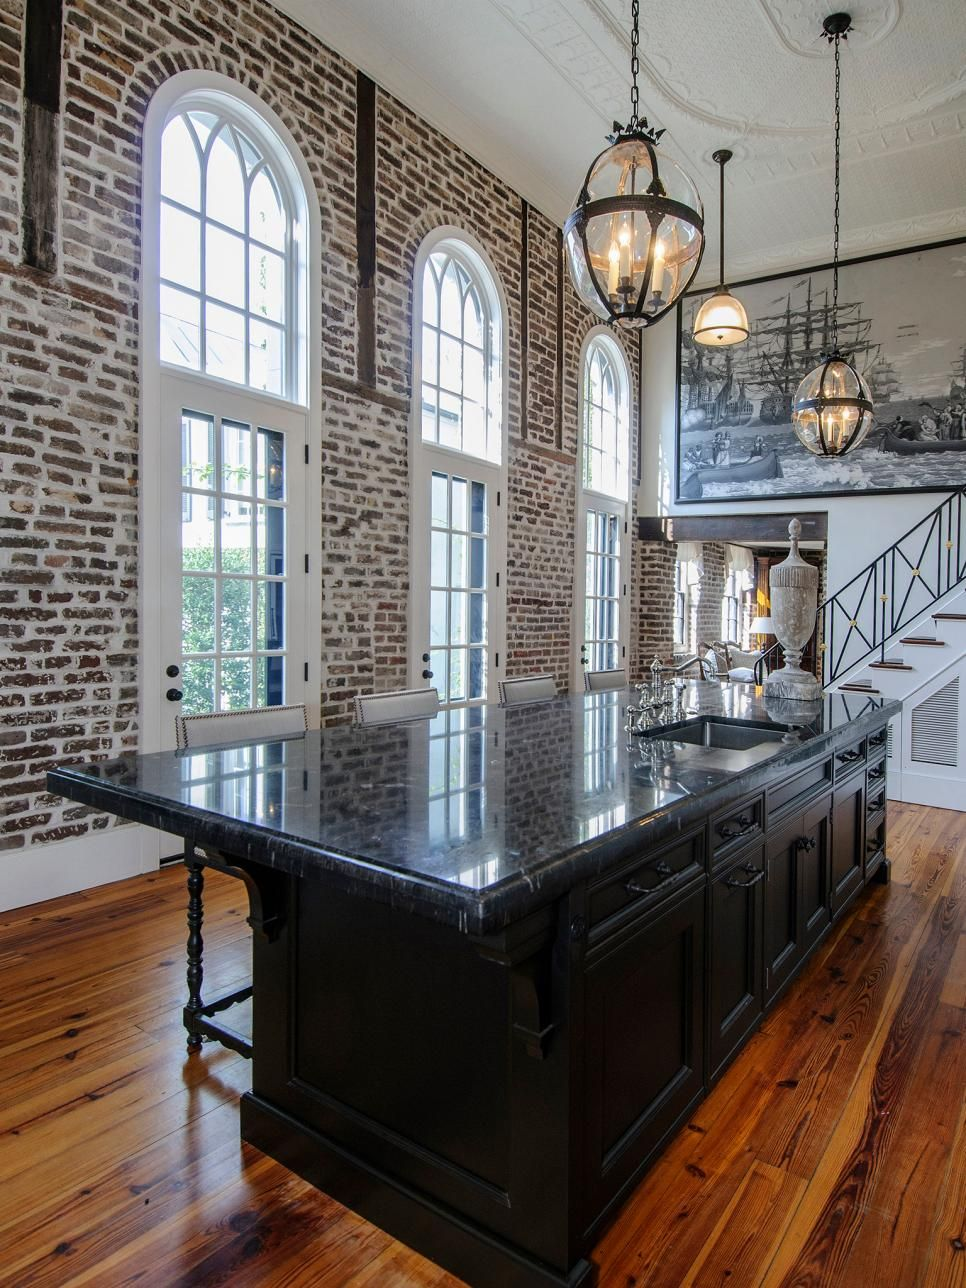 This spectacularly renovated kitchen in a historical home